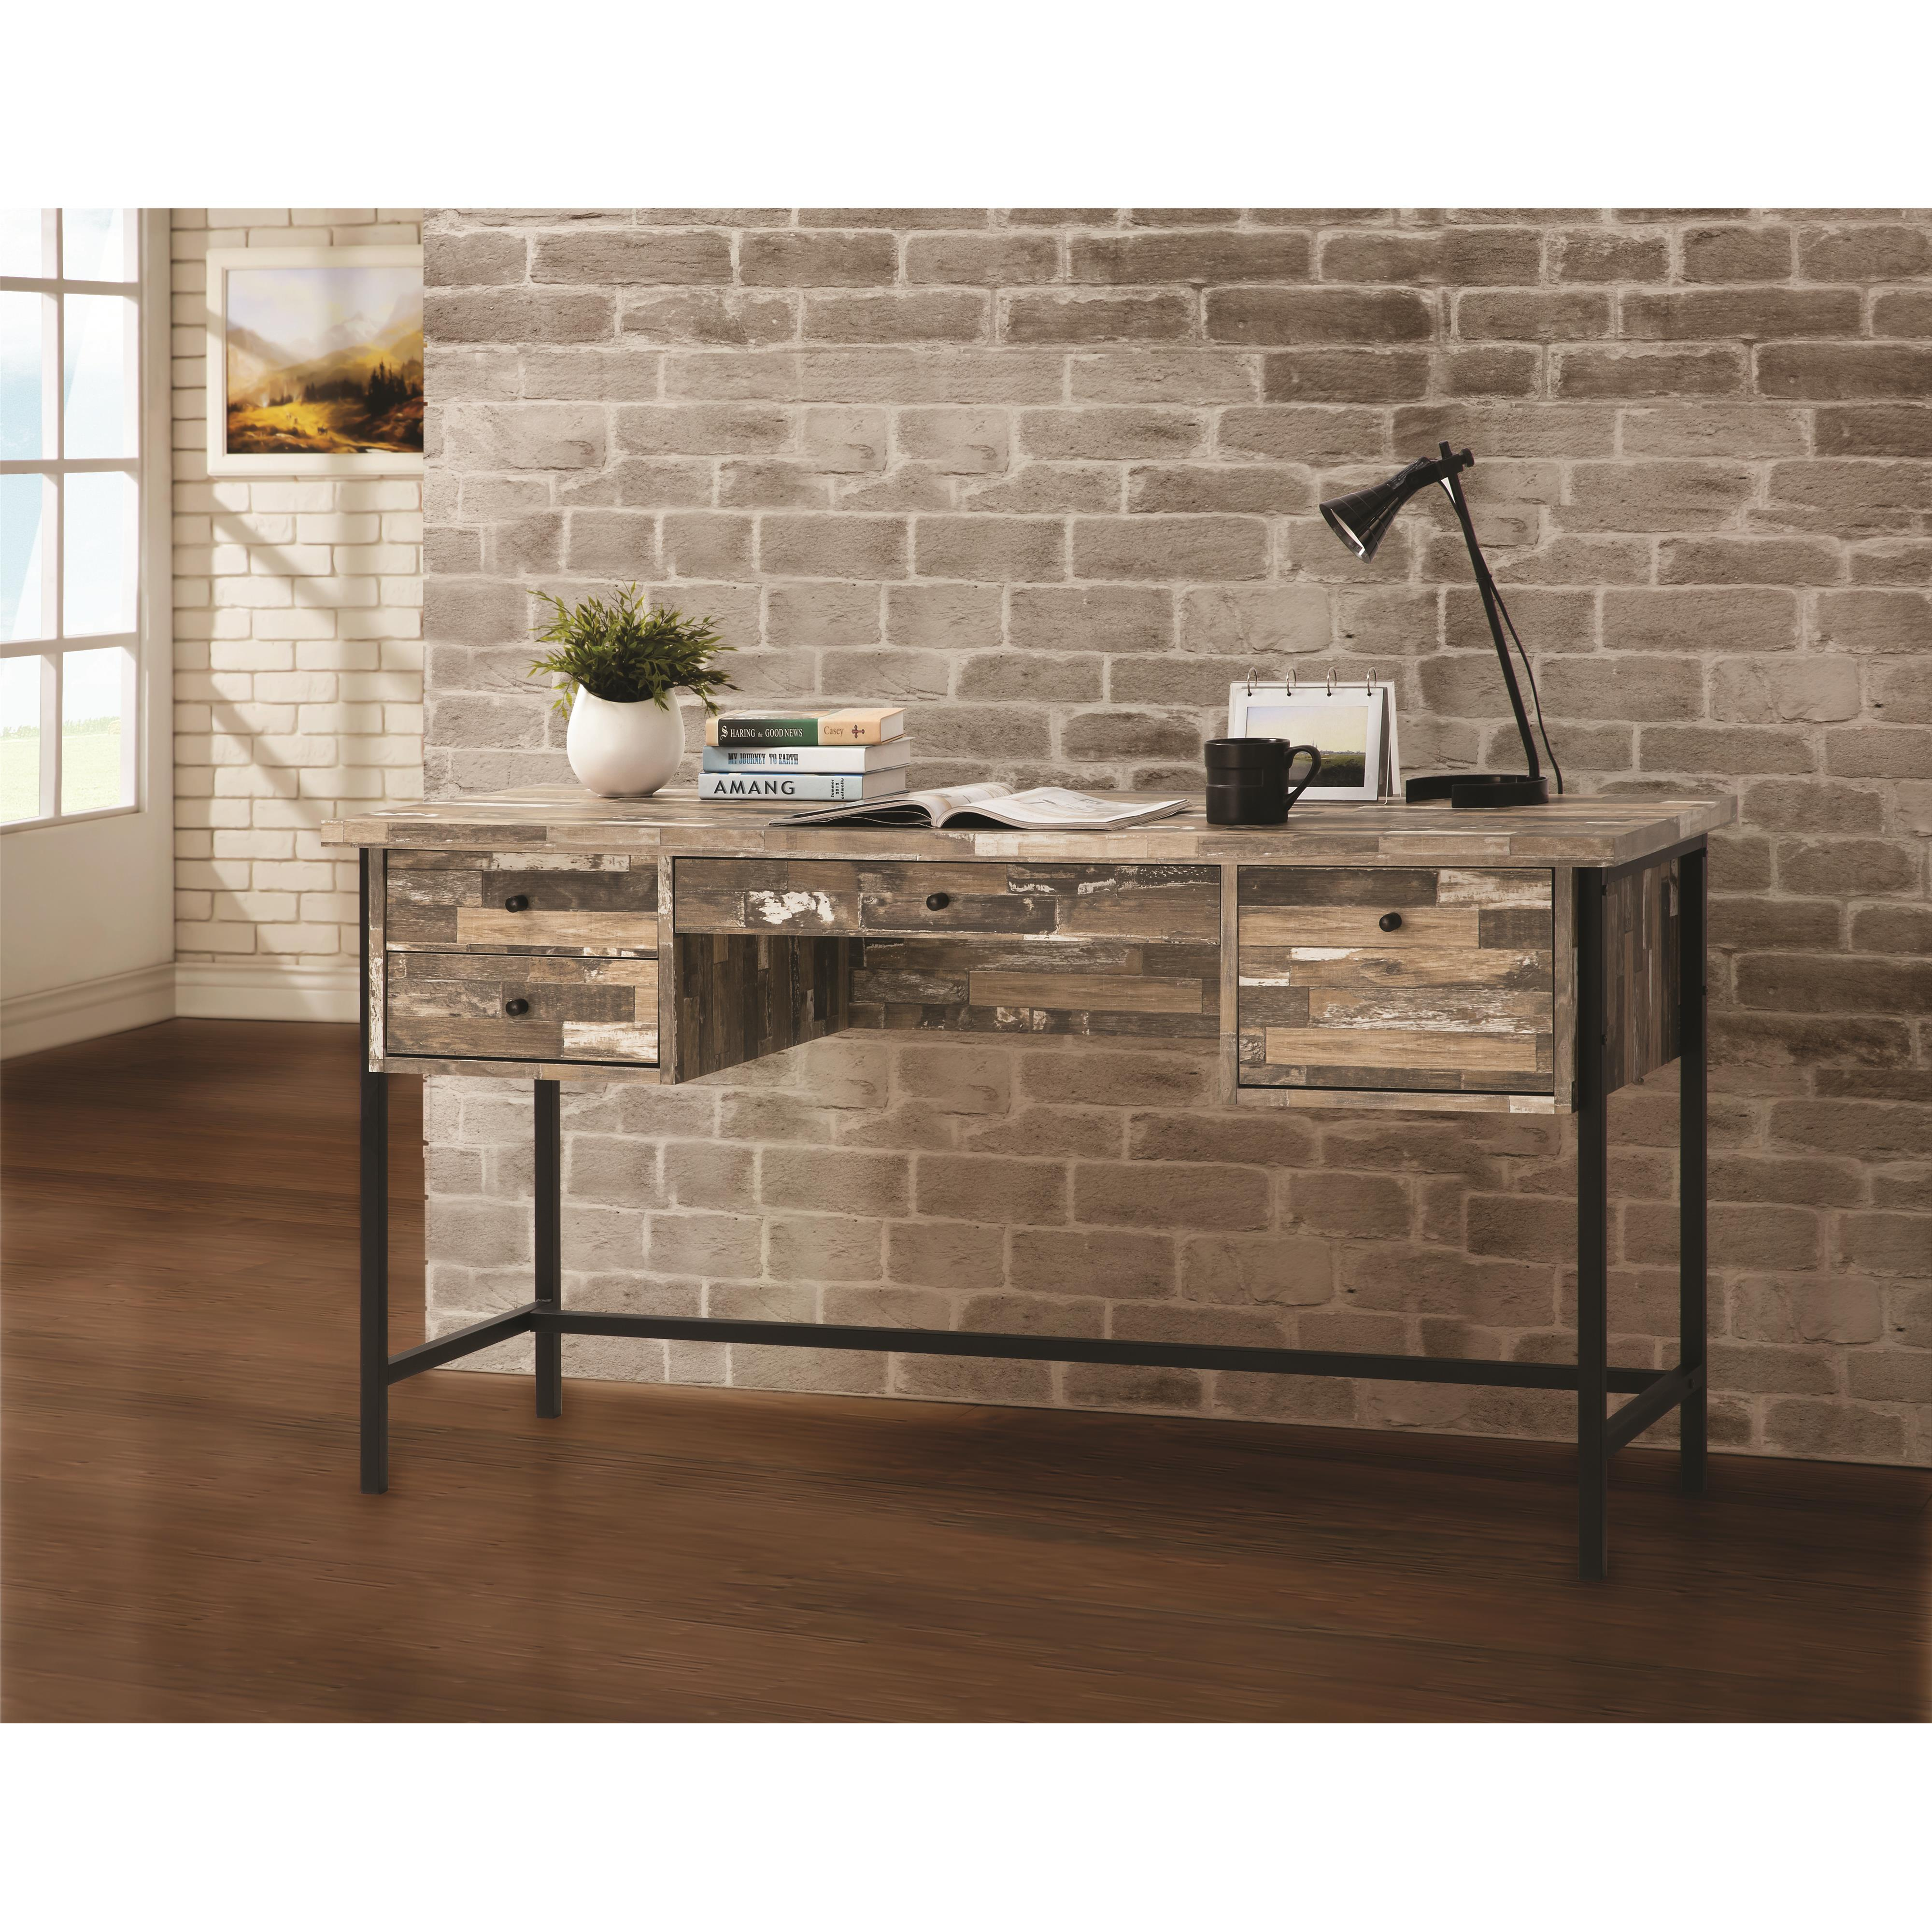 Desks With Drawers Rustic Style Writing Desk With Drawers By Coaster At Sam Levitz Furniture